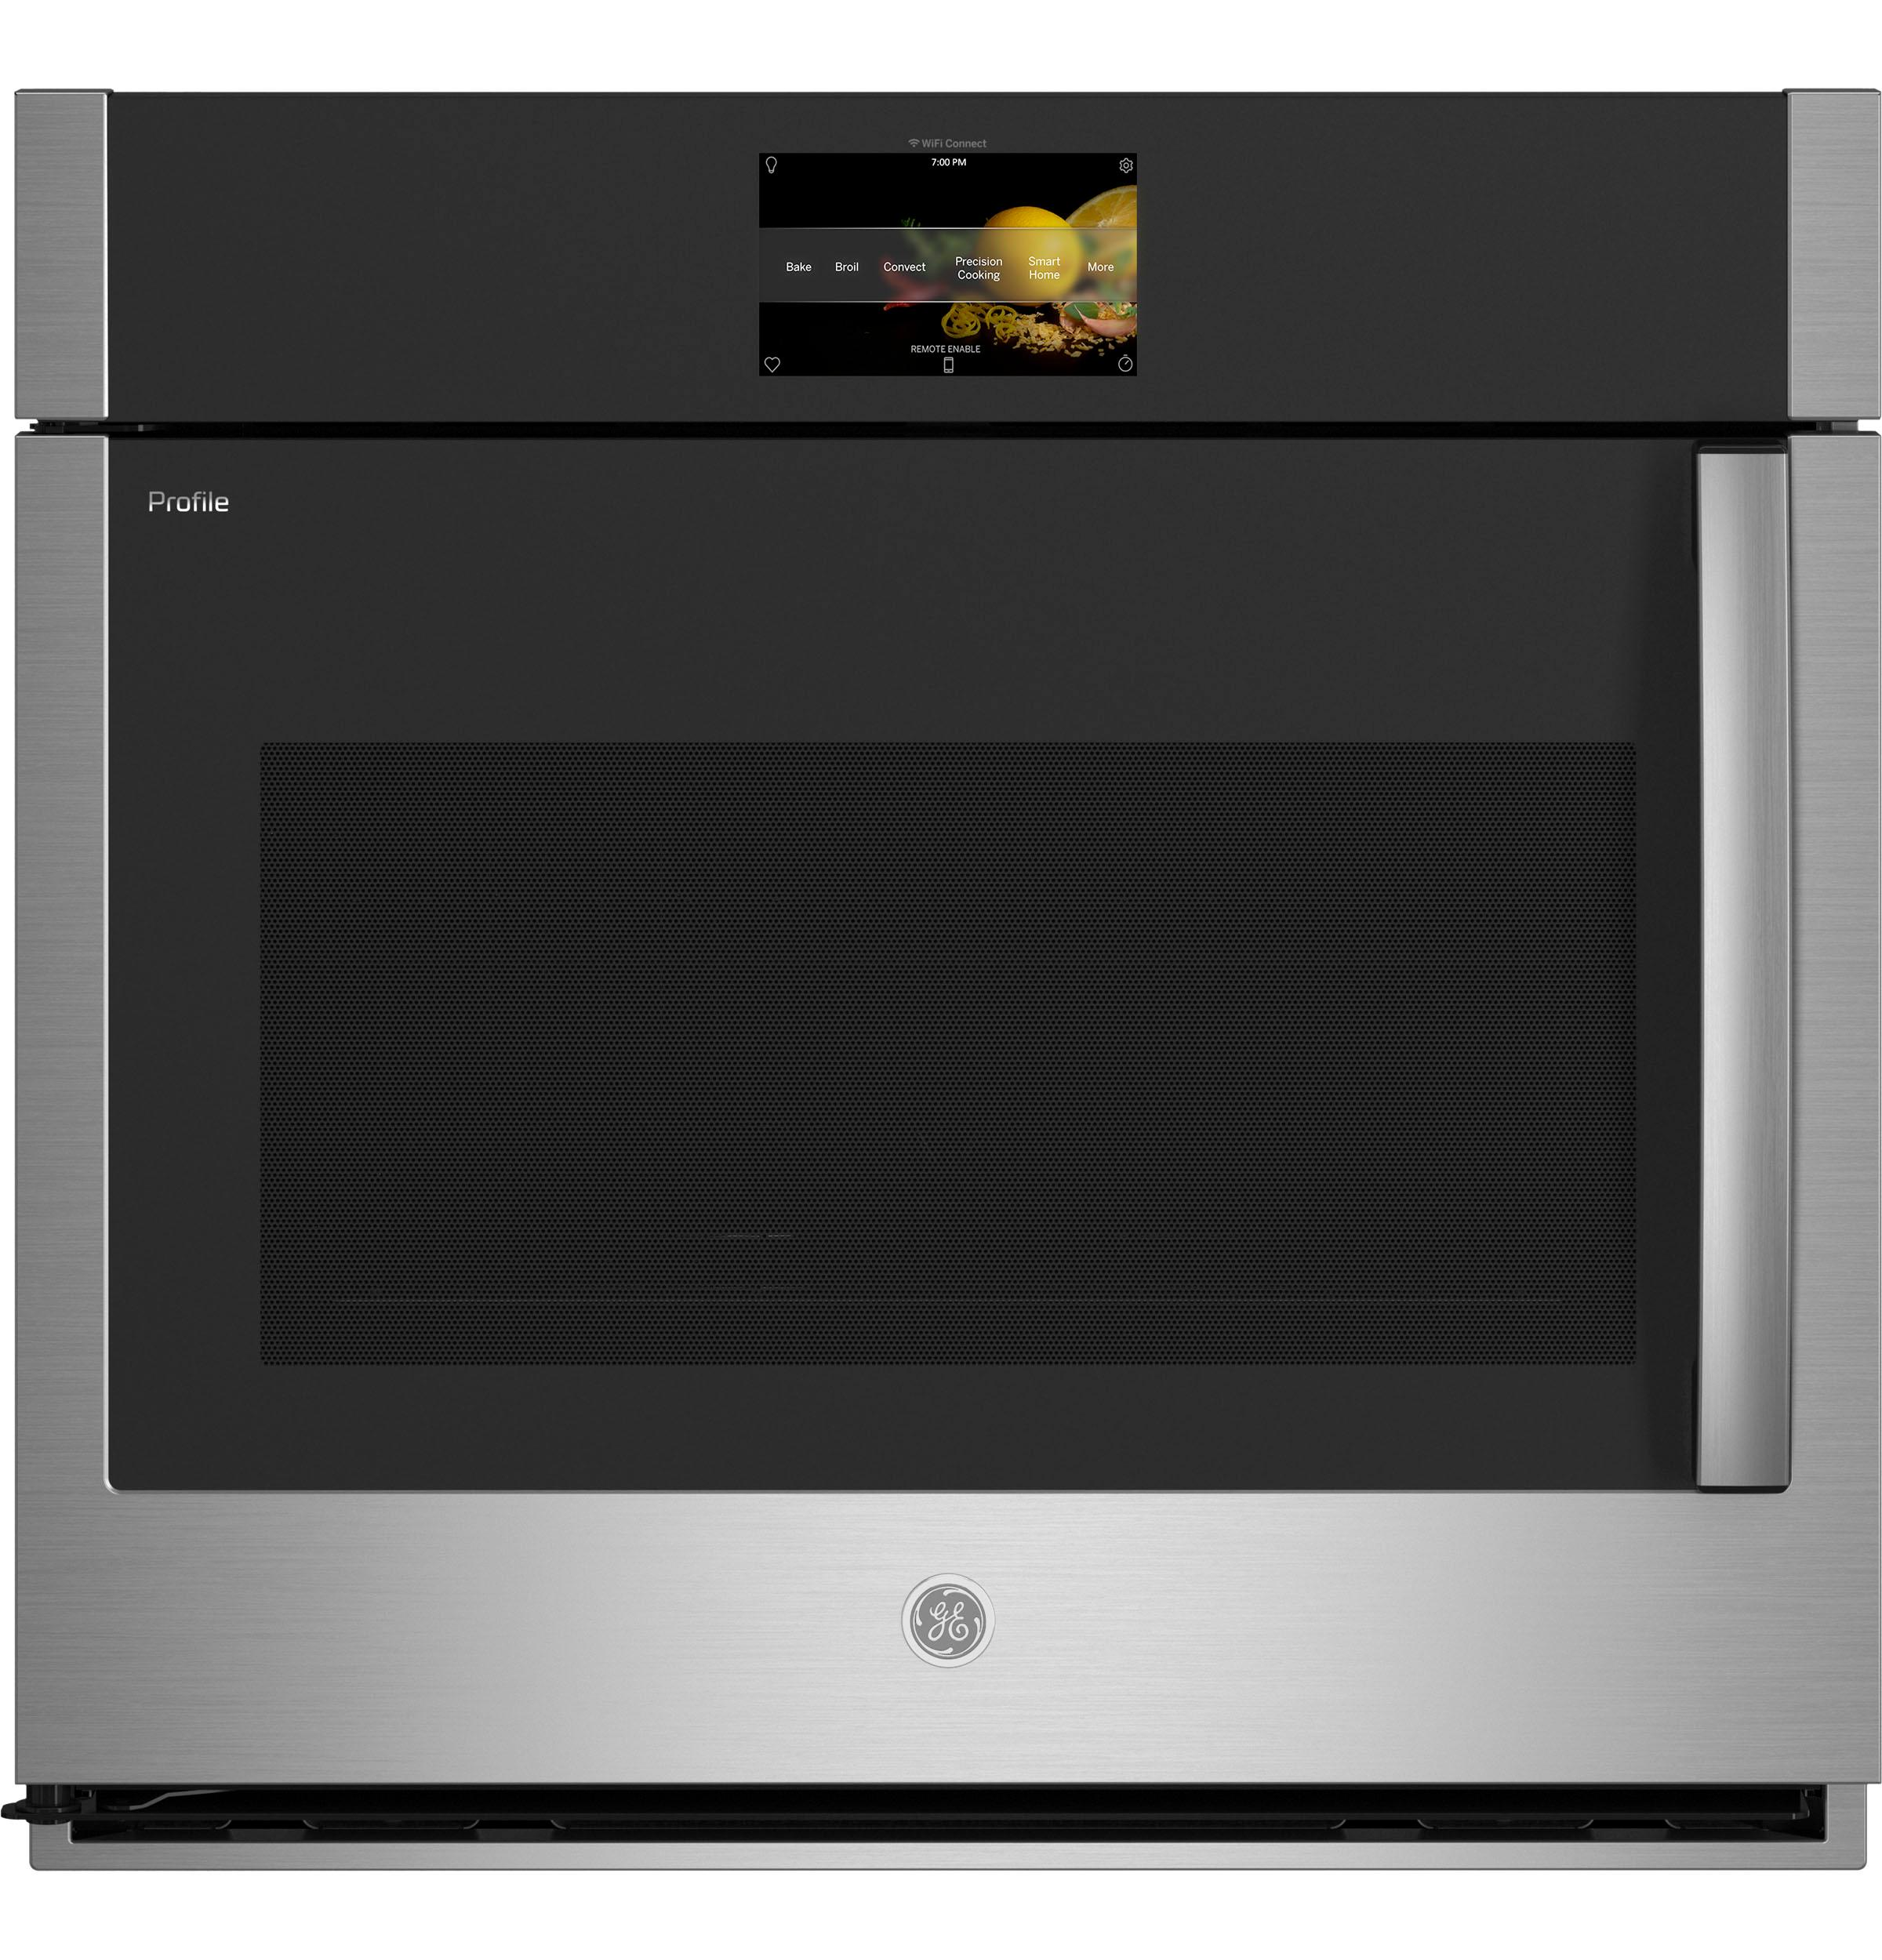 """GEGe Profile™ 30"""" Smart Built-In Convection Single Wall Oven With Left-Hand Side-Swing Doors"""